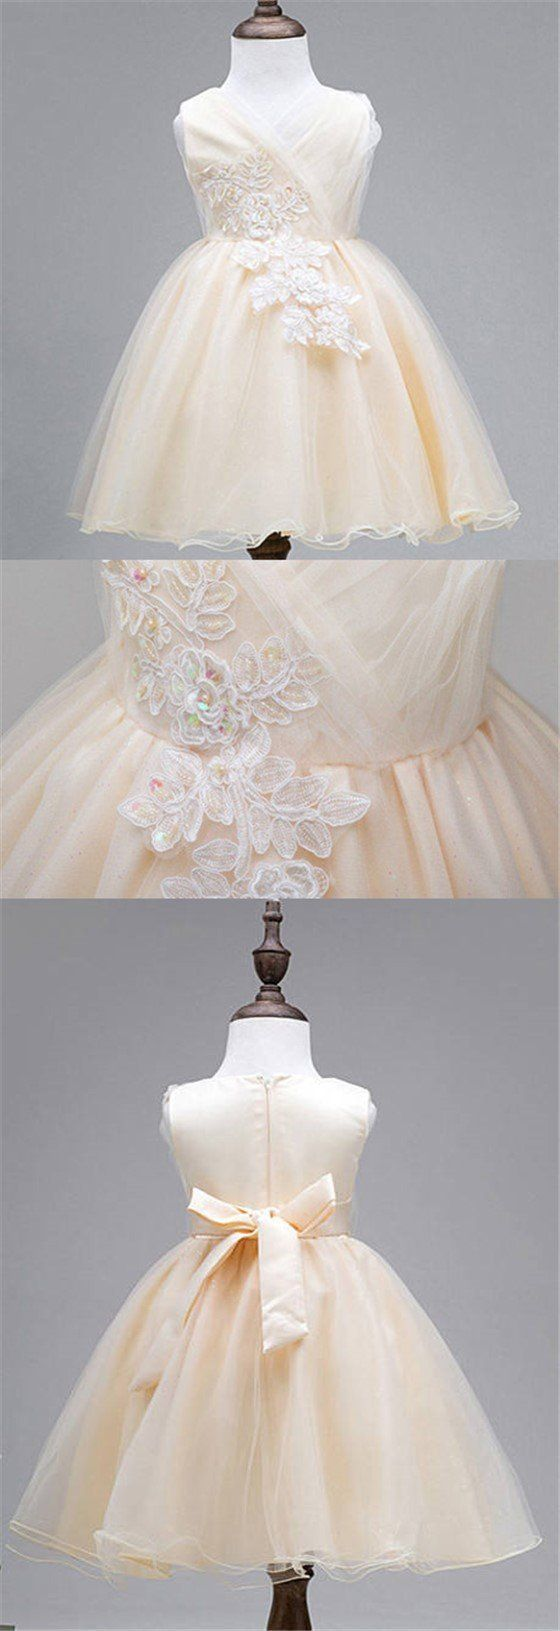 Lace Tulle Cute Flower Girl Dresses, Lovely Affordable Satin Top Little Girl